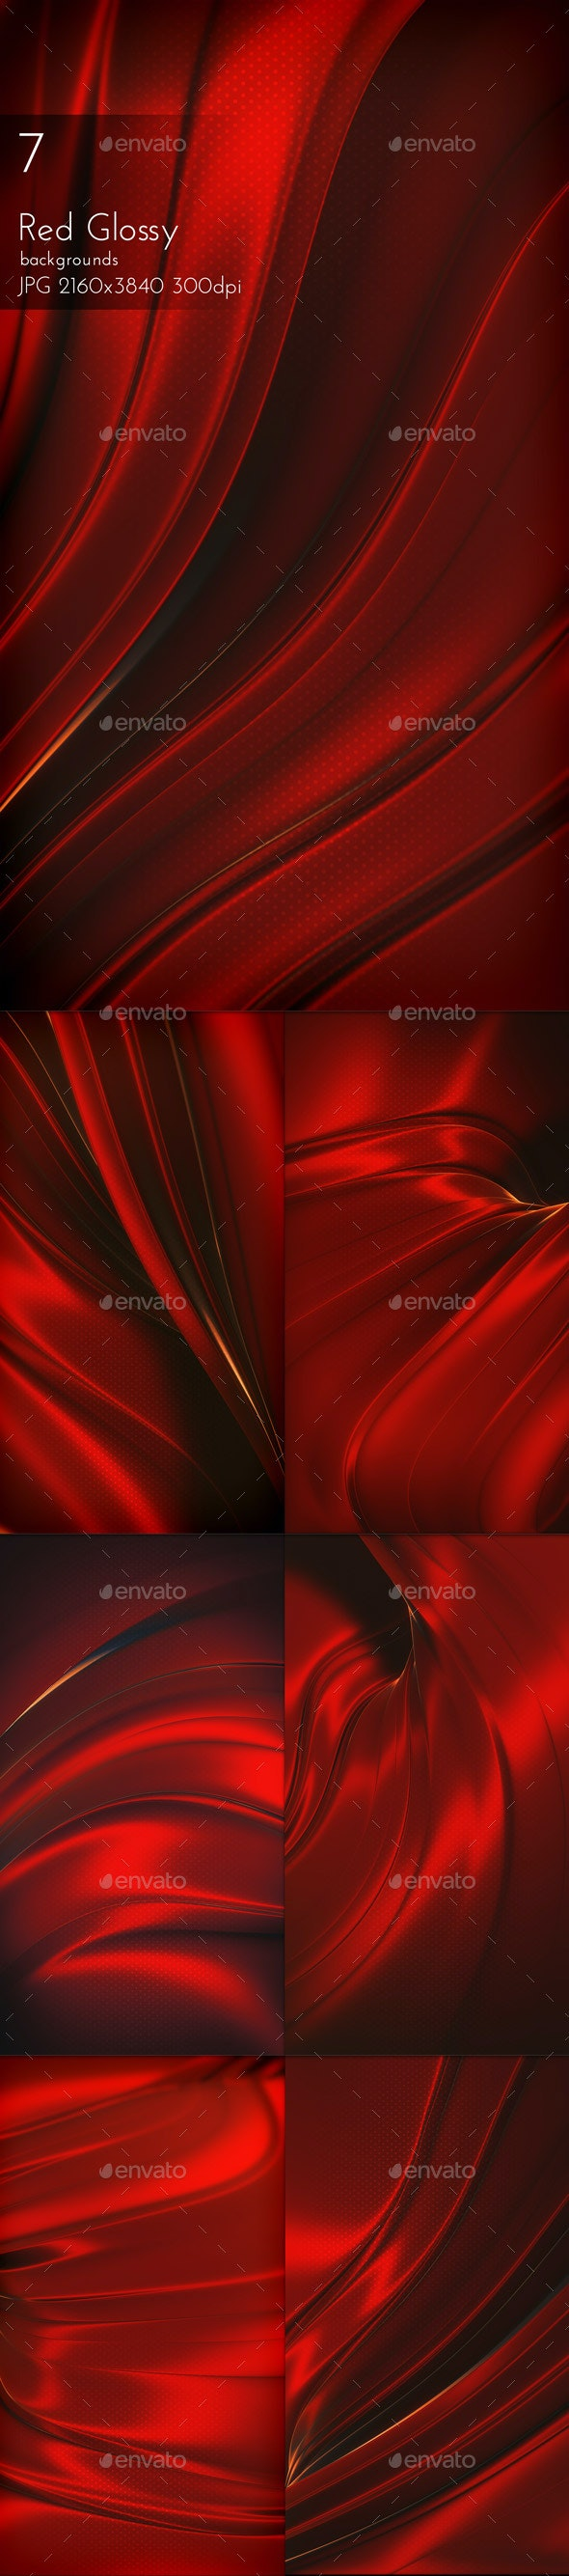 Dark Red Glossy Background - Abstract Backgrounds